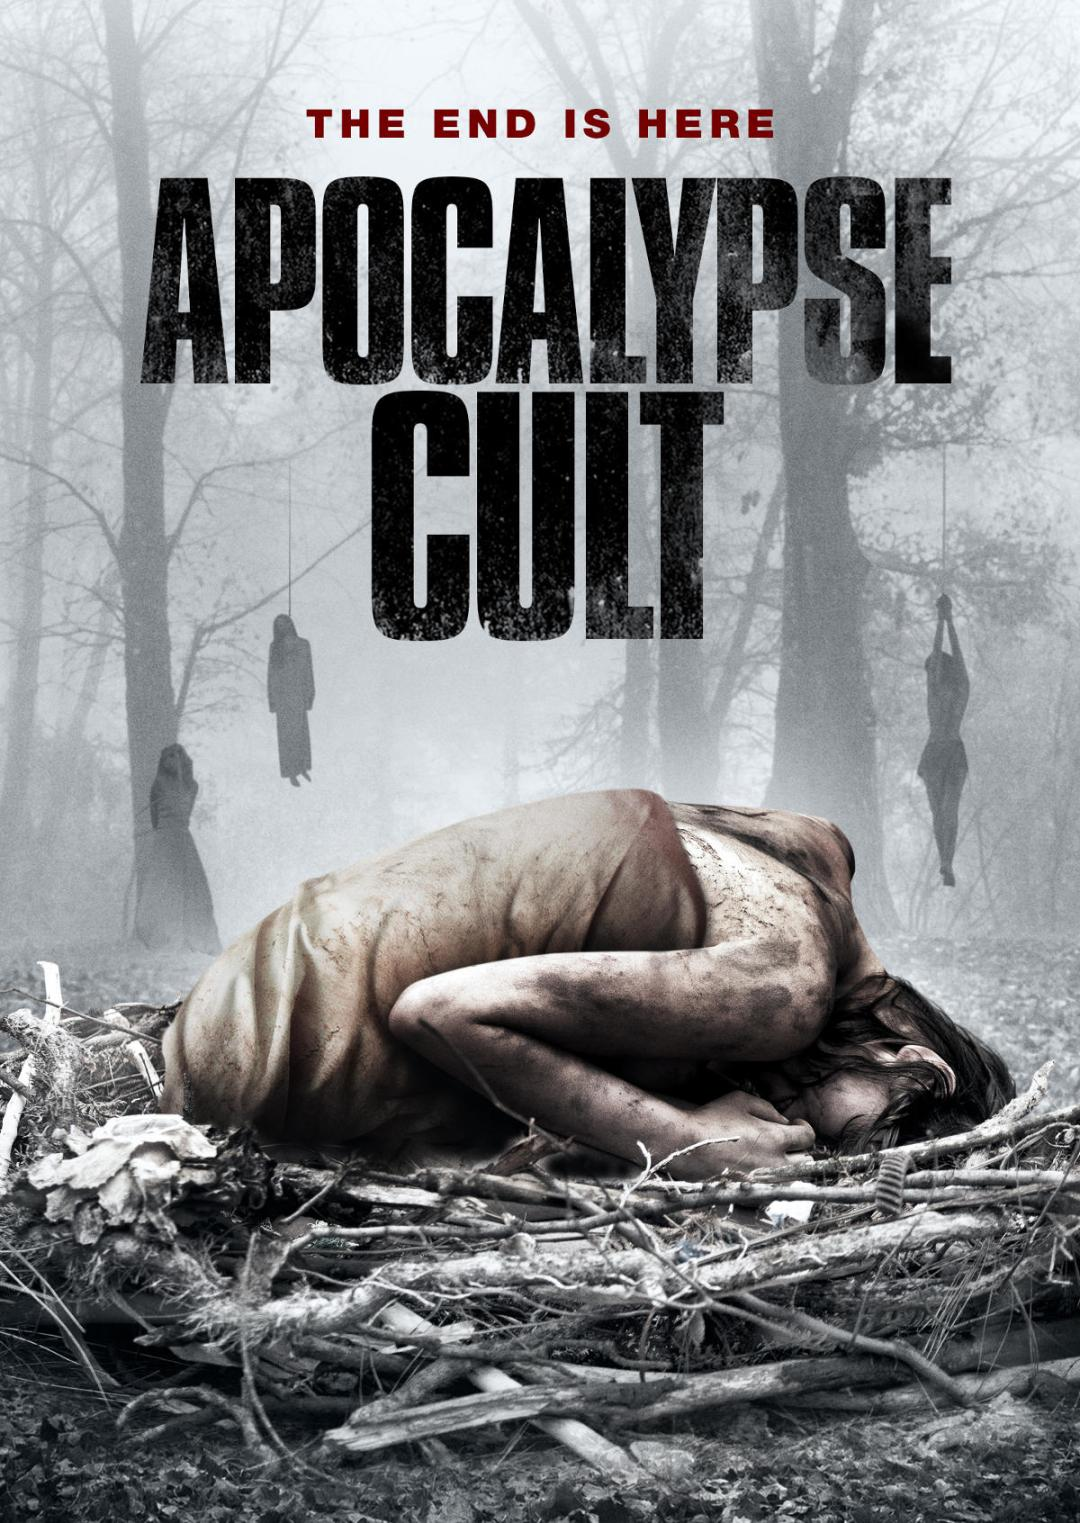 This Halloween You Can Join the 'Apocalypse Cult'